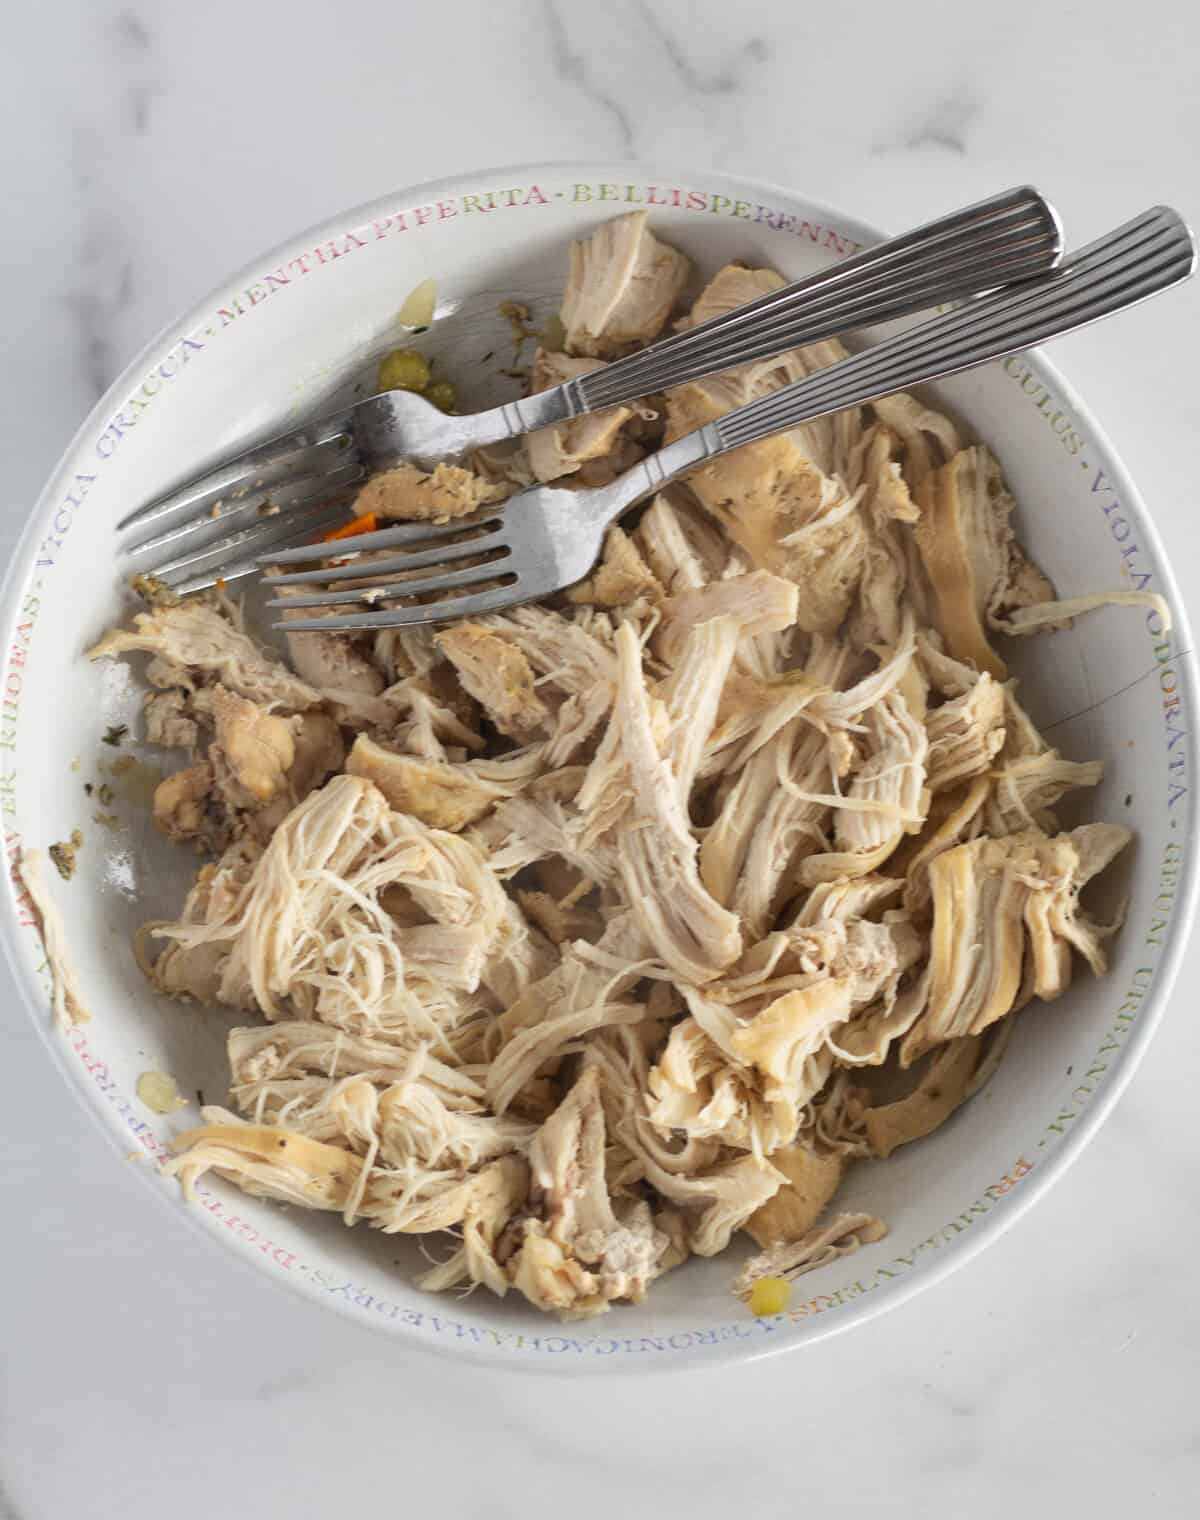 shredded chicken in bowl